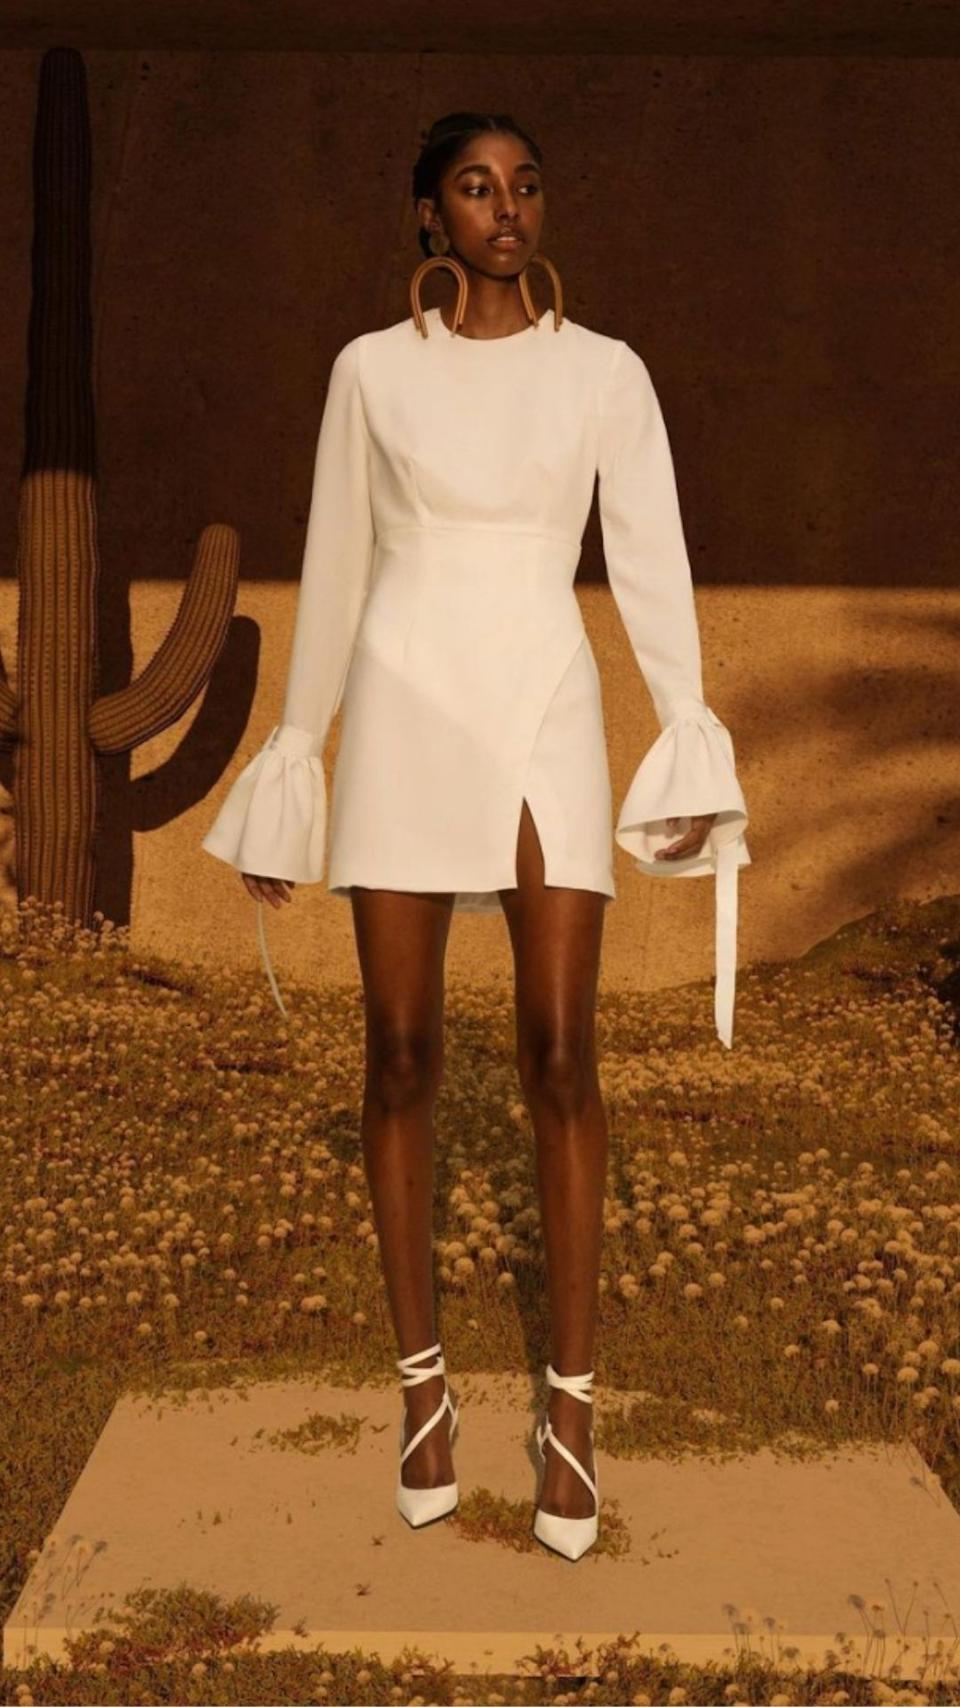 israella KOBLA creates made-to-order fashions - like the ZOLA dress, $430.